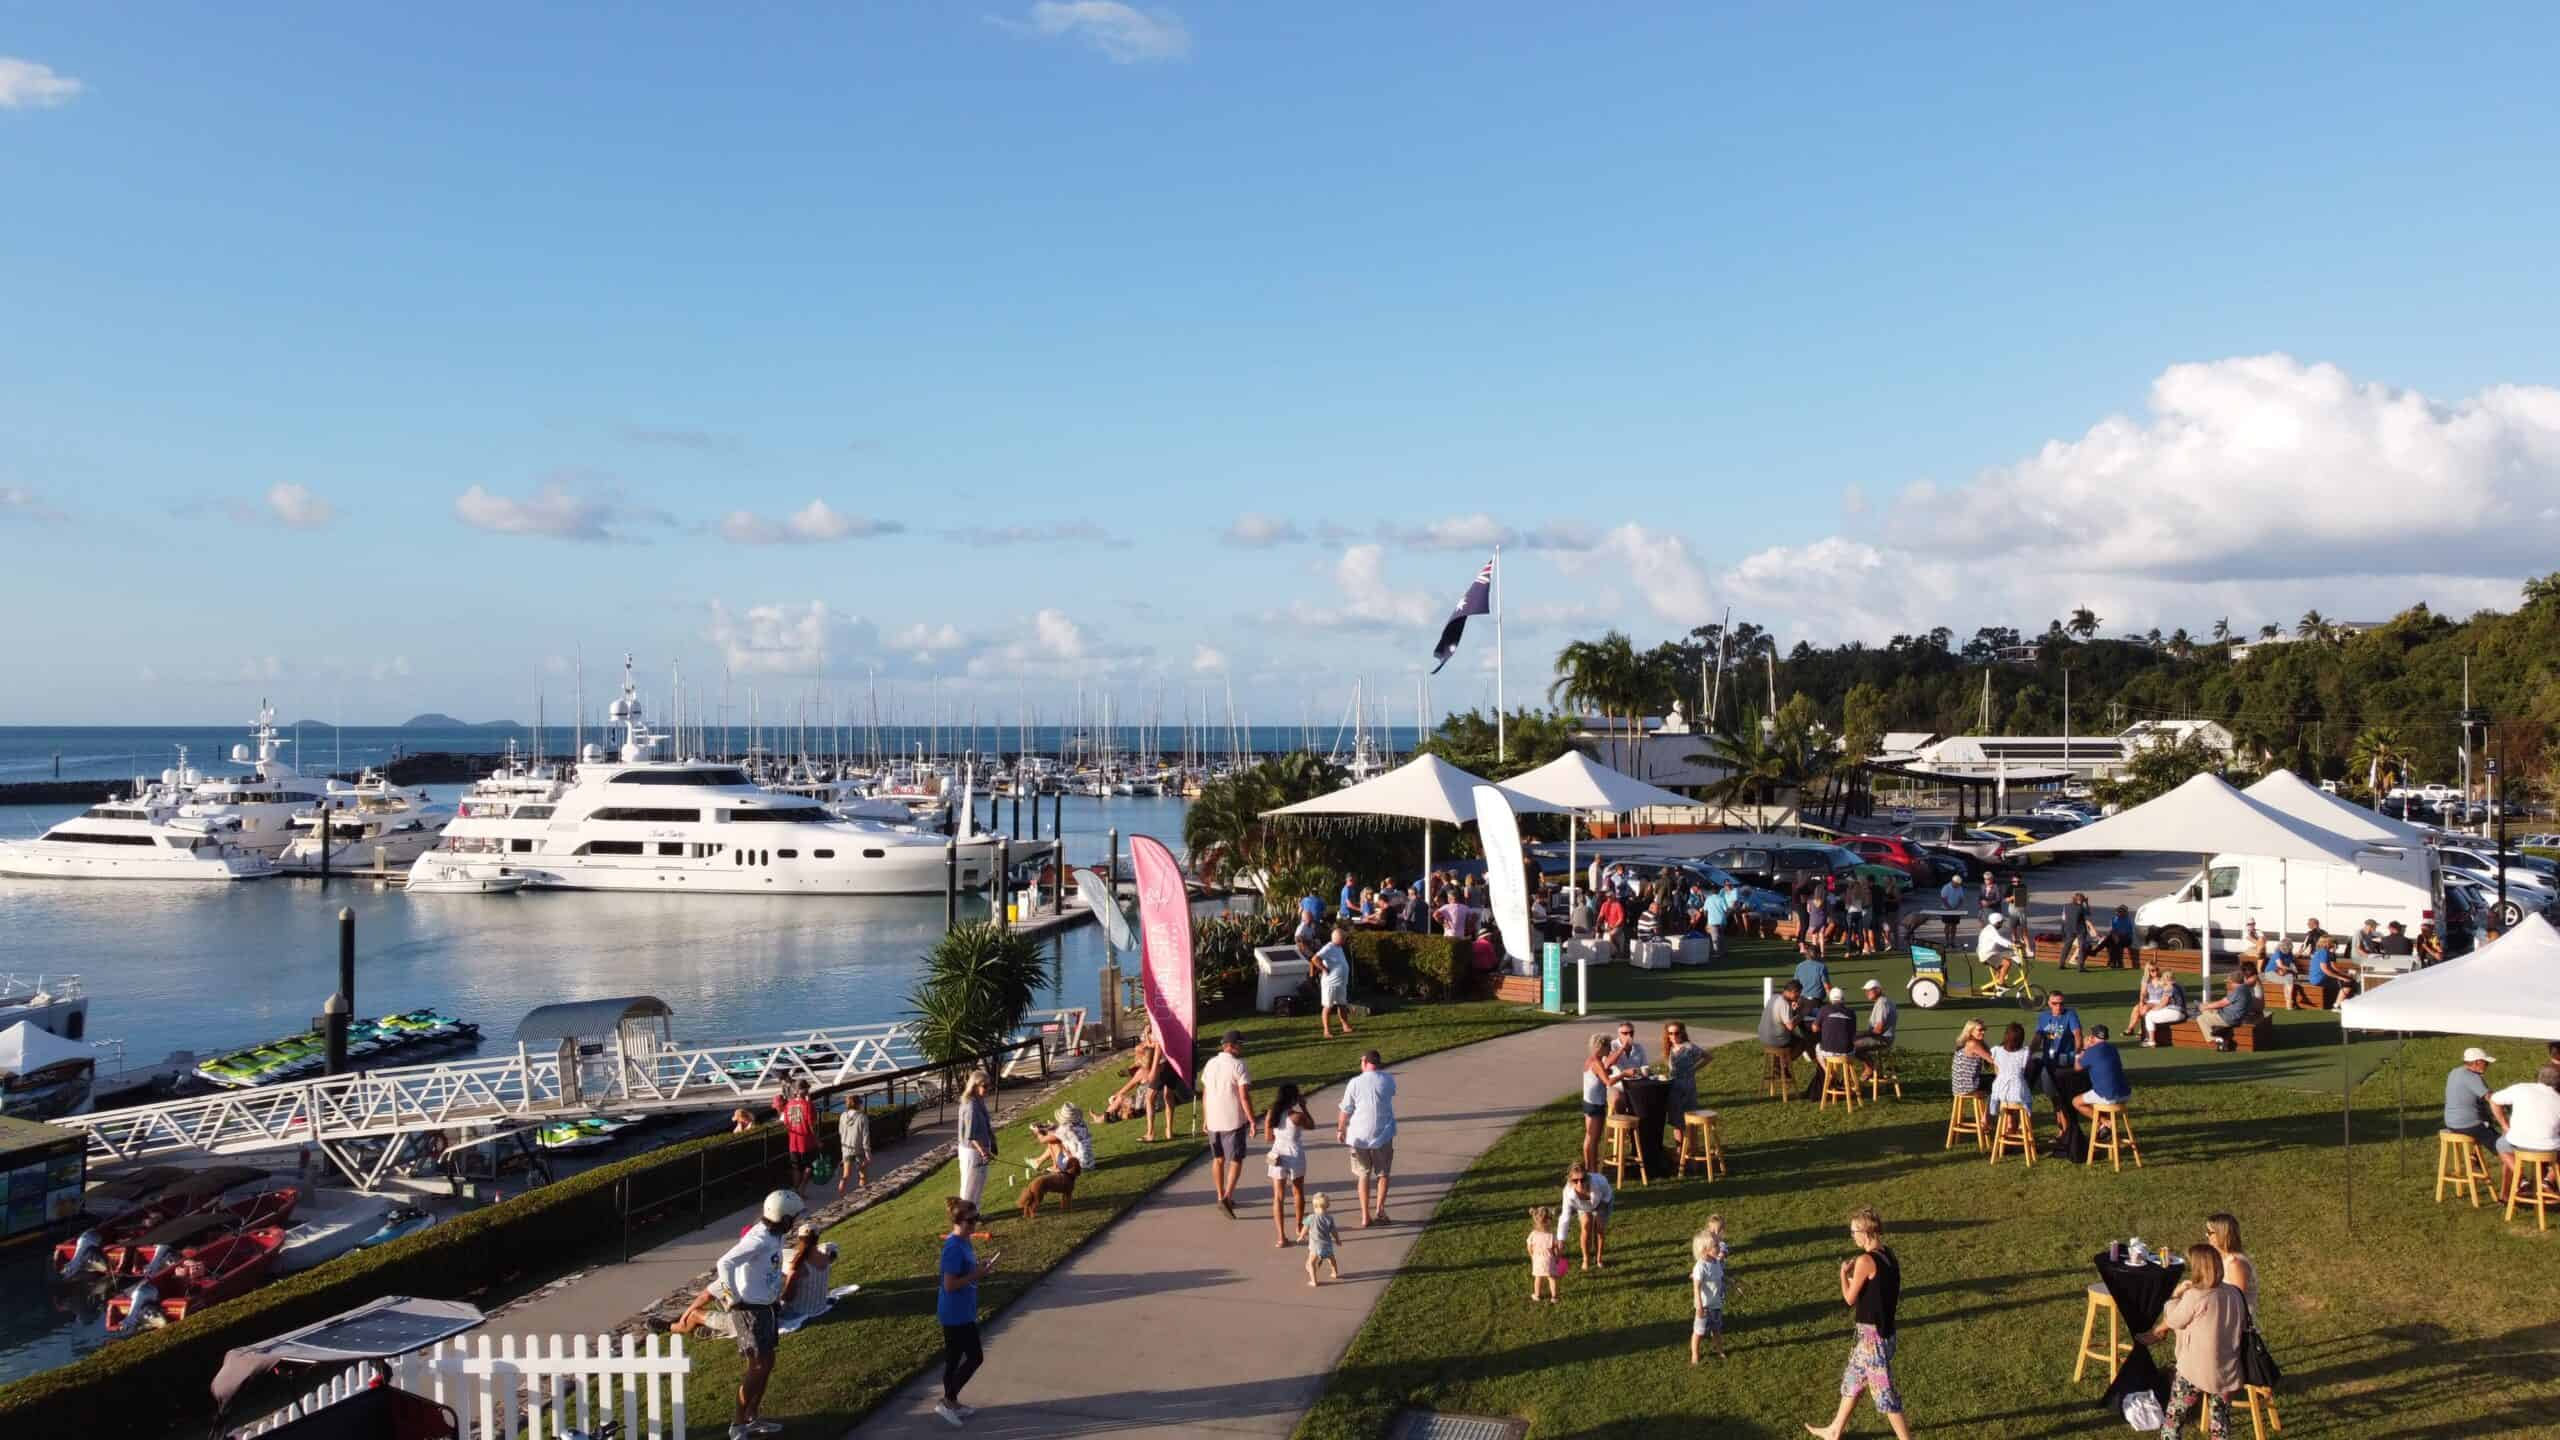 Big Aussie BBQ Fundraiser in support of Prostate Cancer Foundation of Australia at Coral Sea Marina